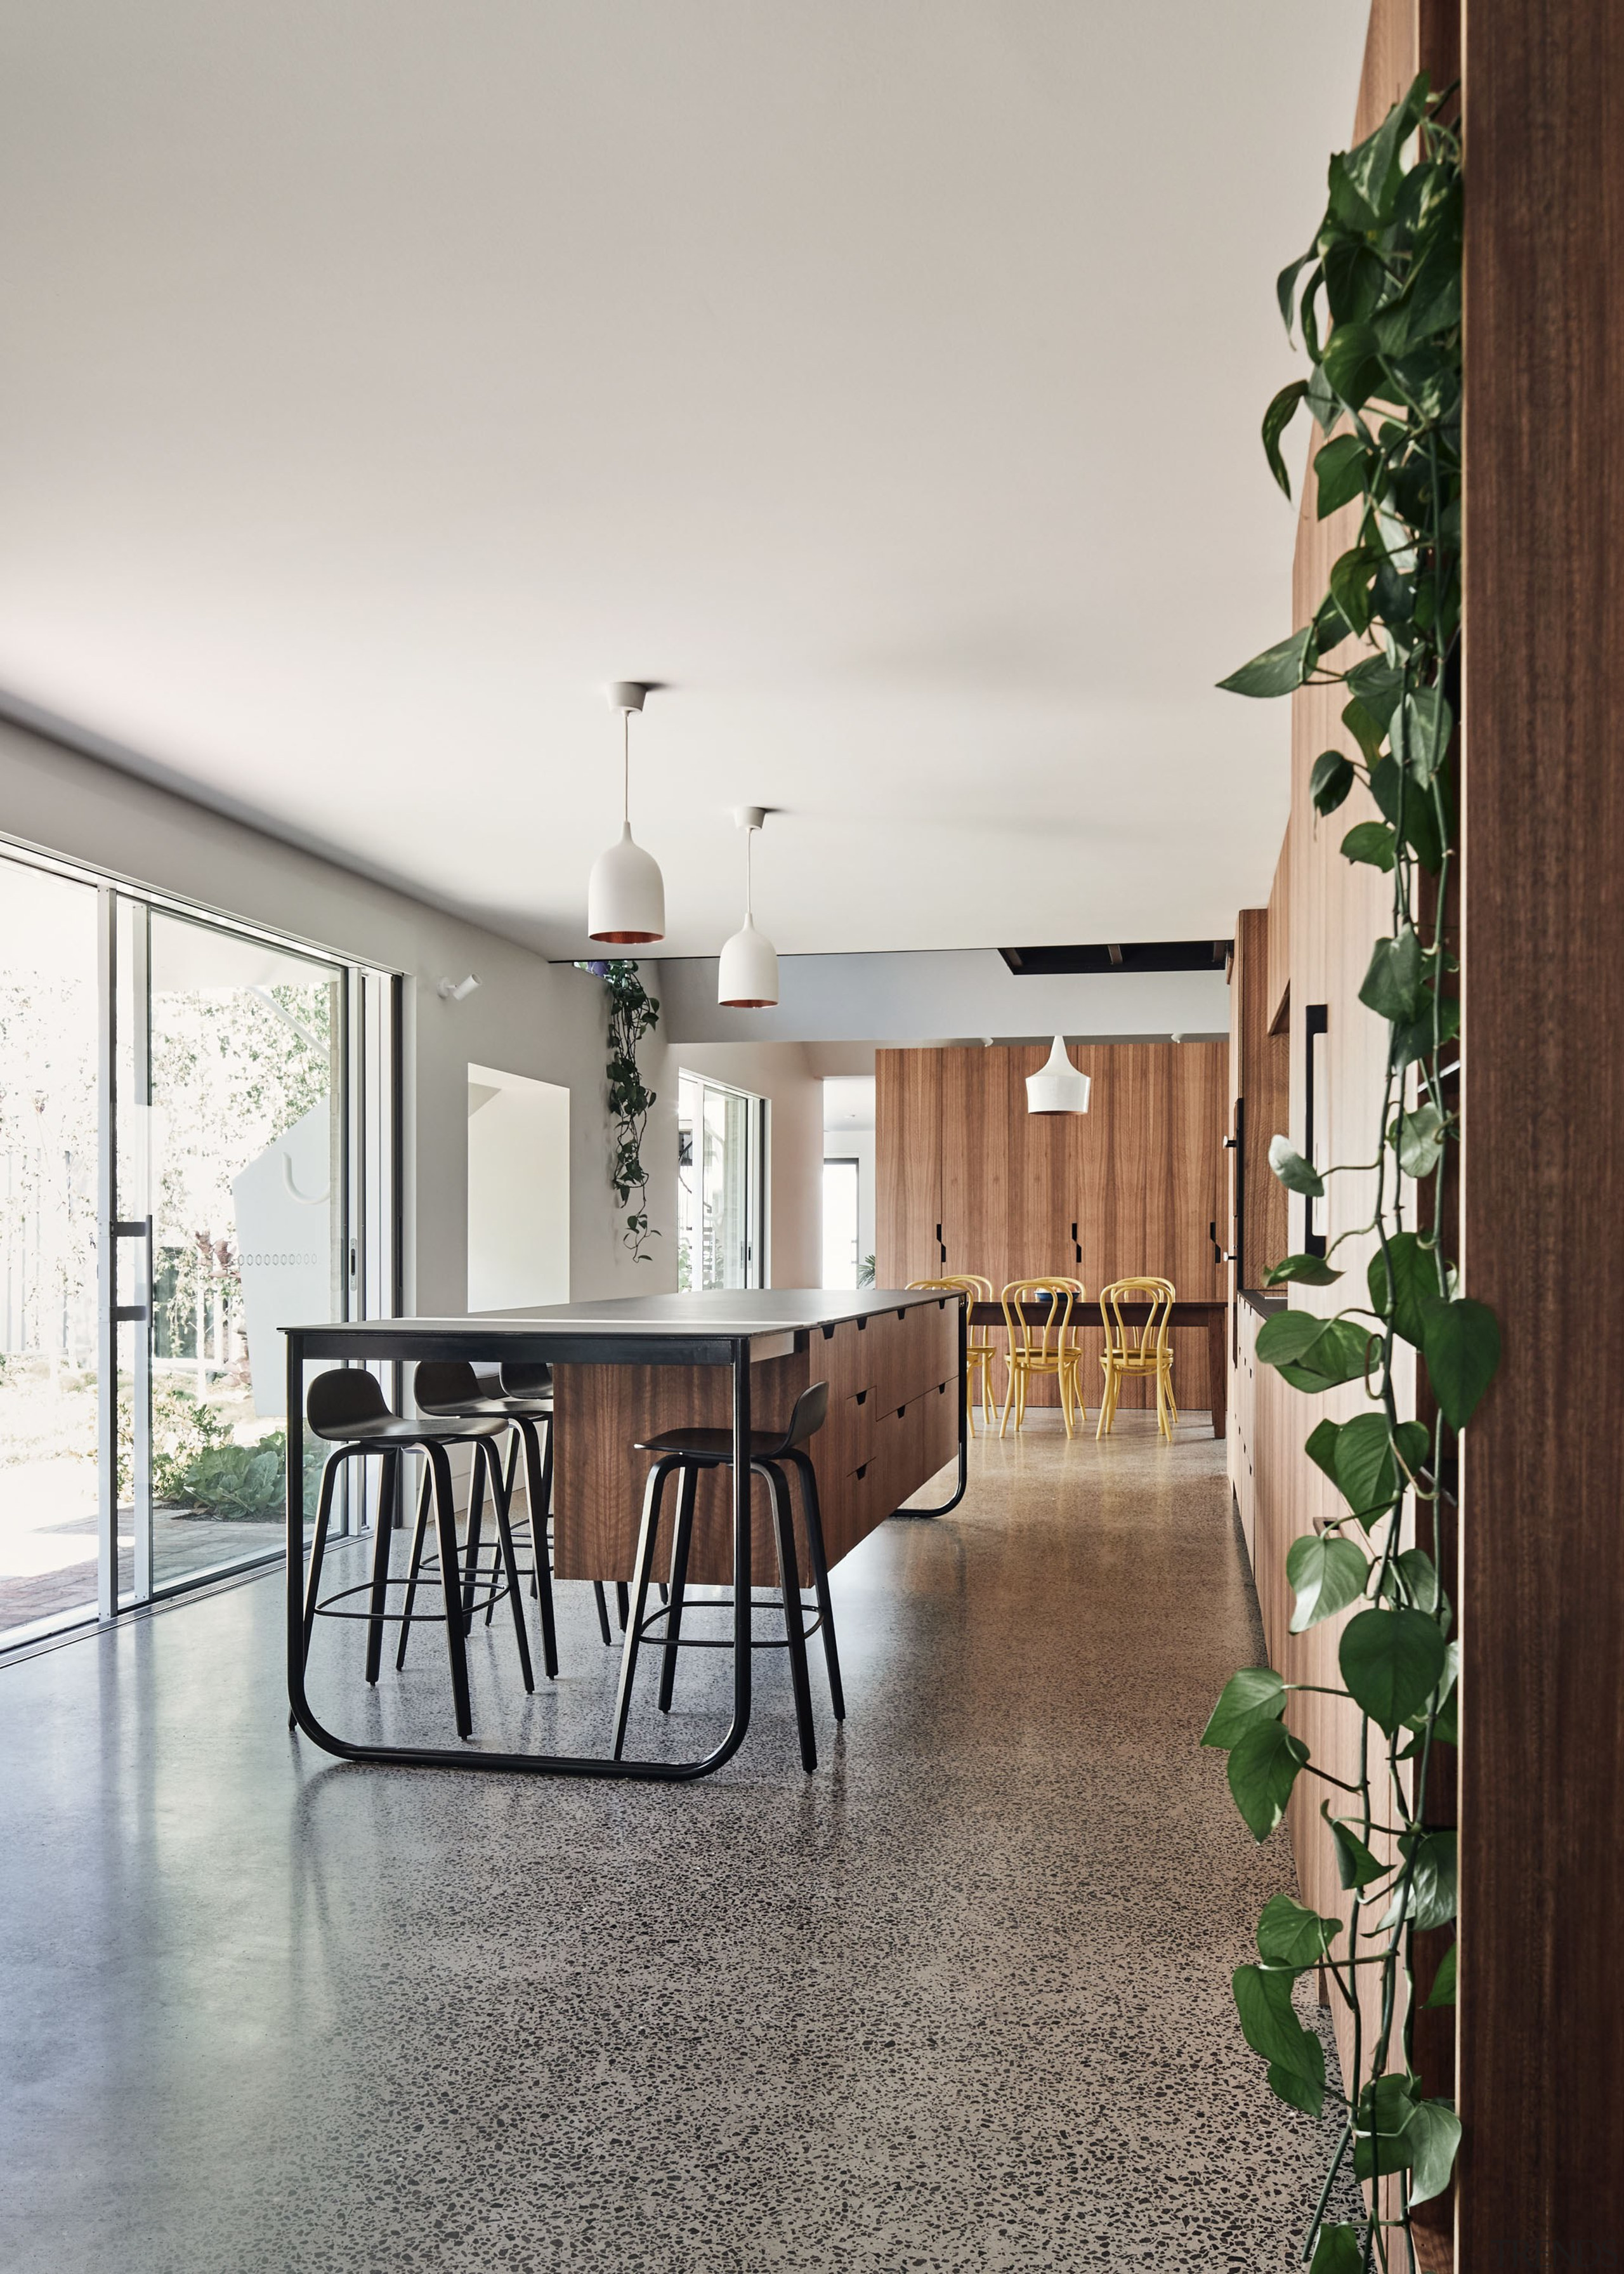 Polished Salt & Pepper concrete floors are a white